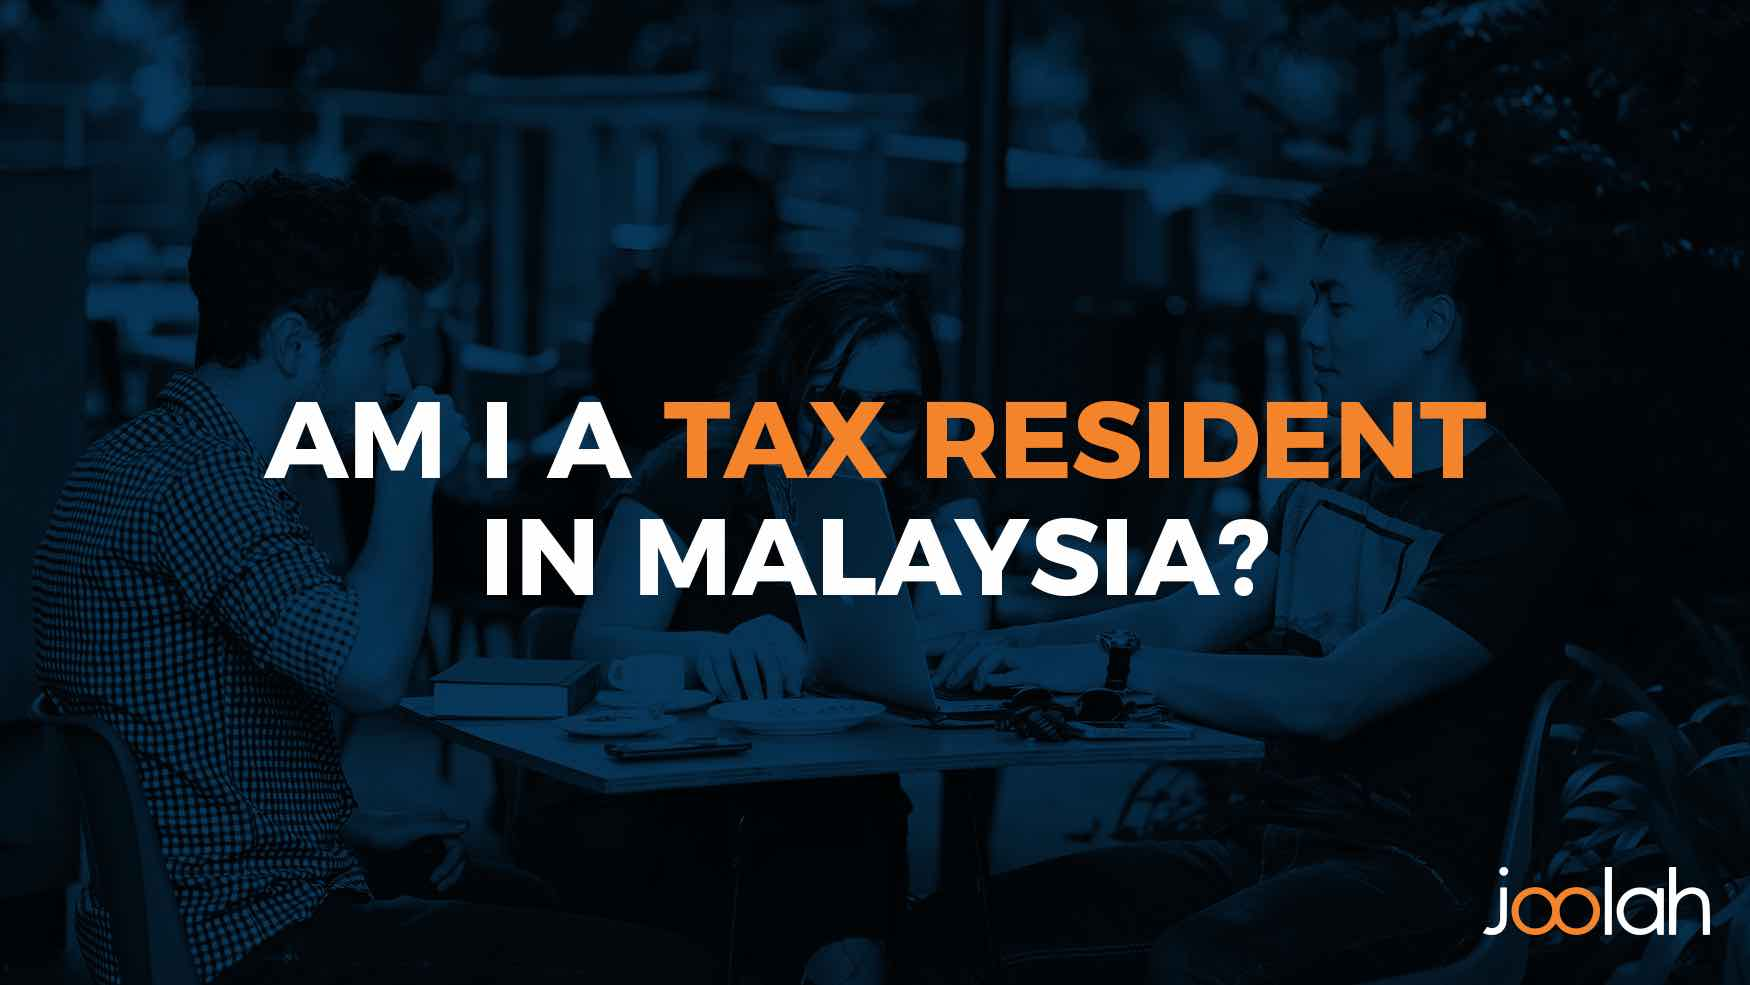 when are you a tax resident in malaysia. Malaysians sitting at table